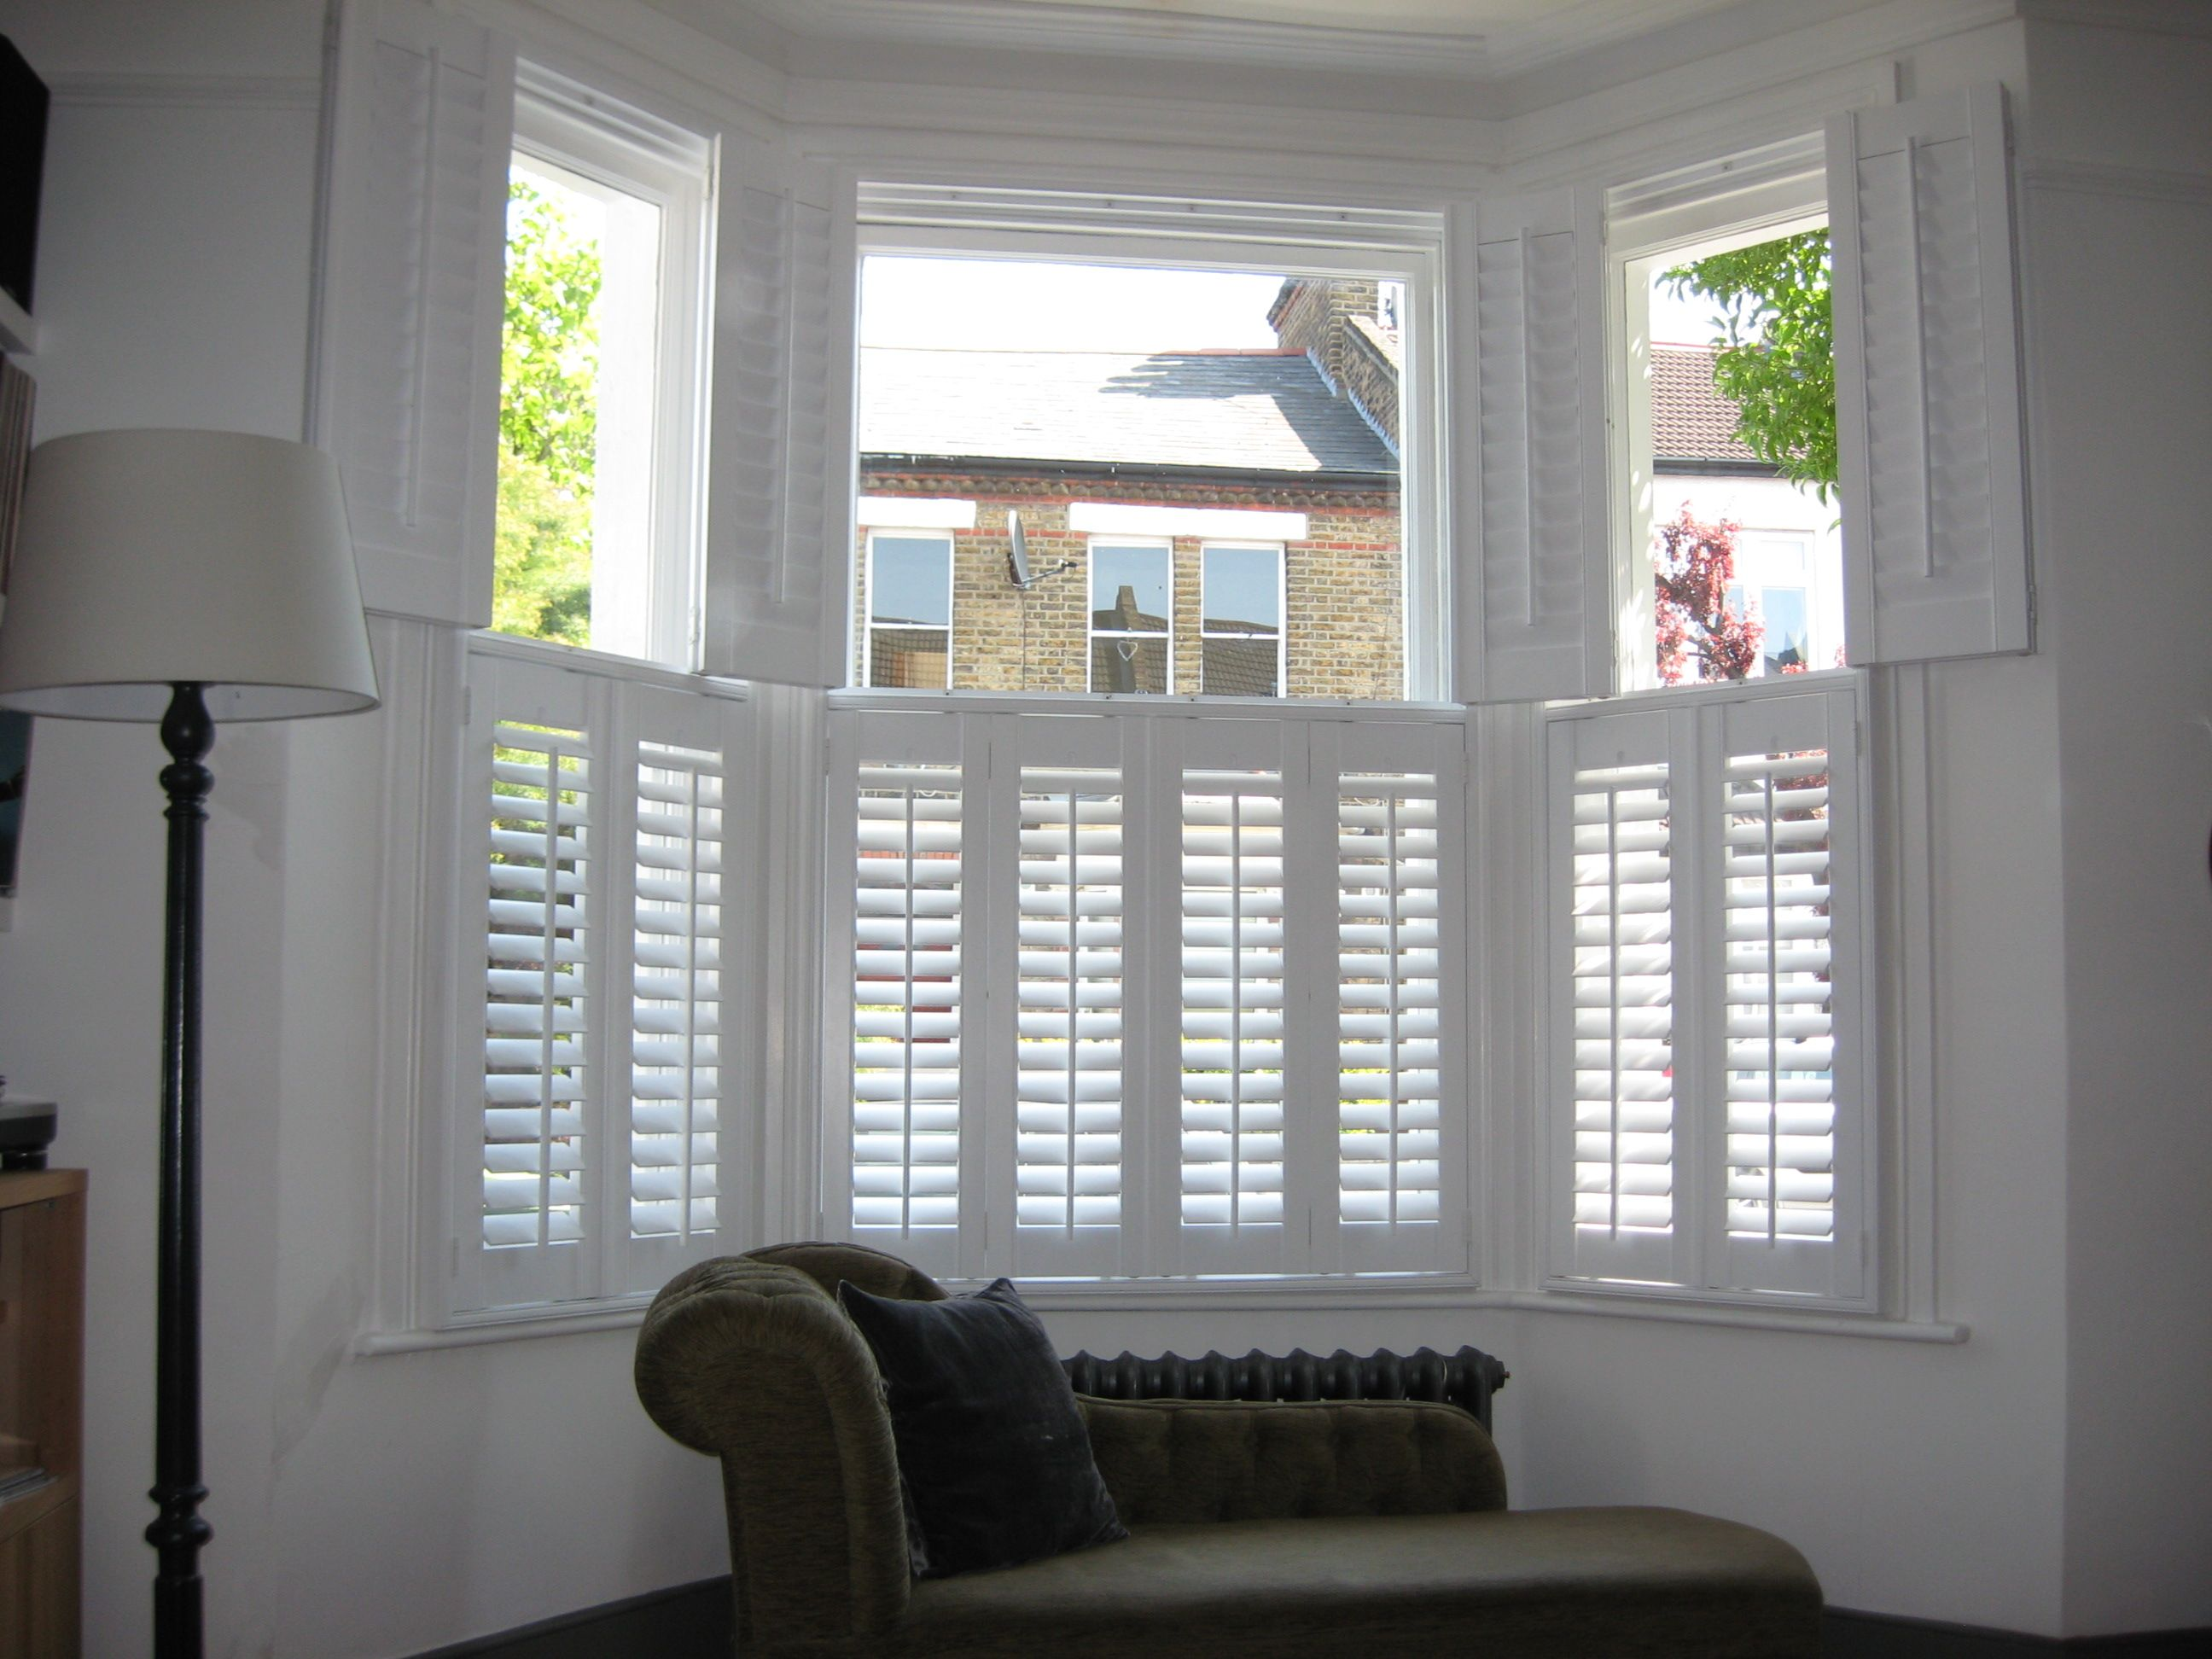 Interior Plantation Indoor Shutters With Cheap Plantation Shutters Also  Half Window Plantation Shutters And Large Window Plantation Shutters  Besides Half ...